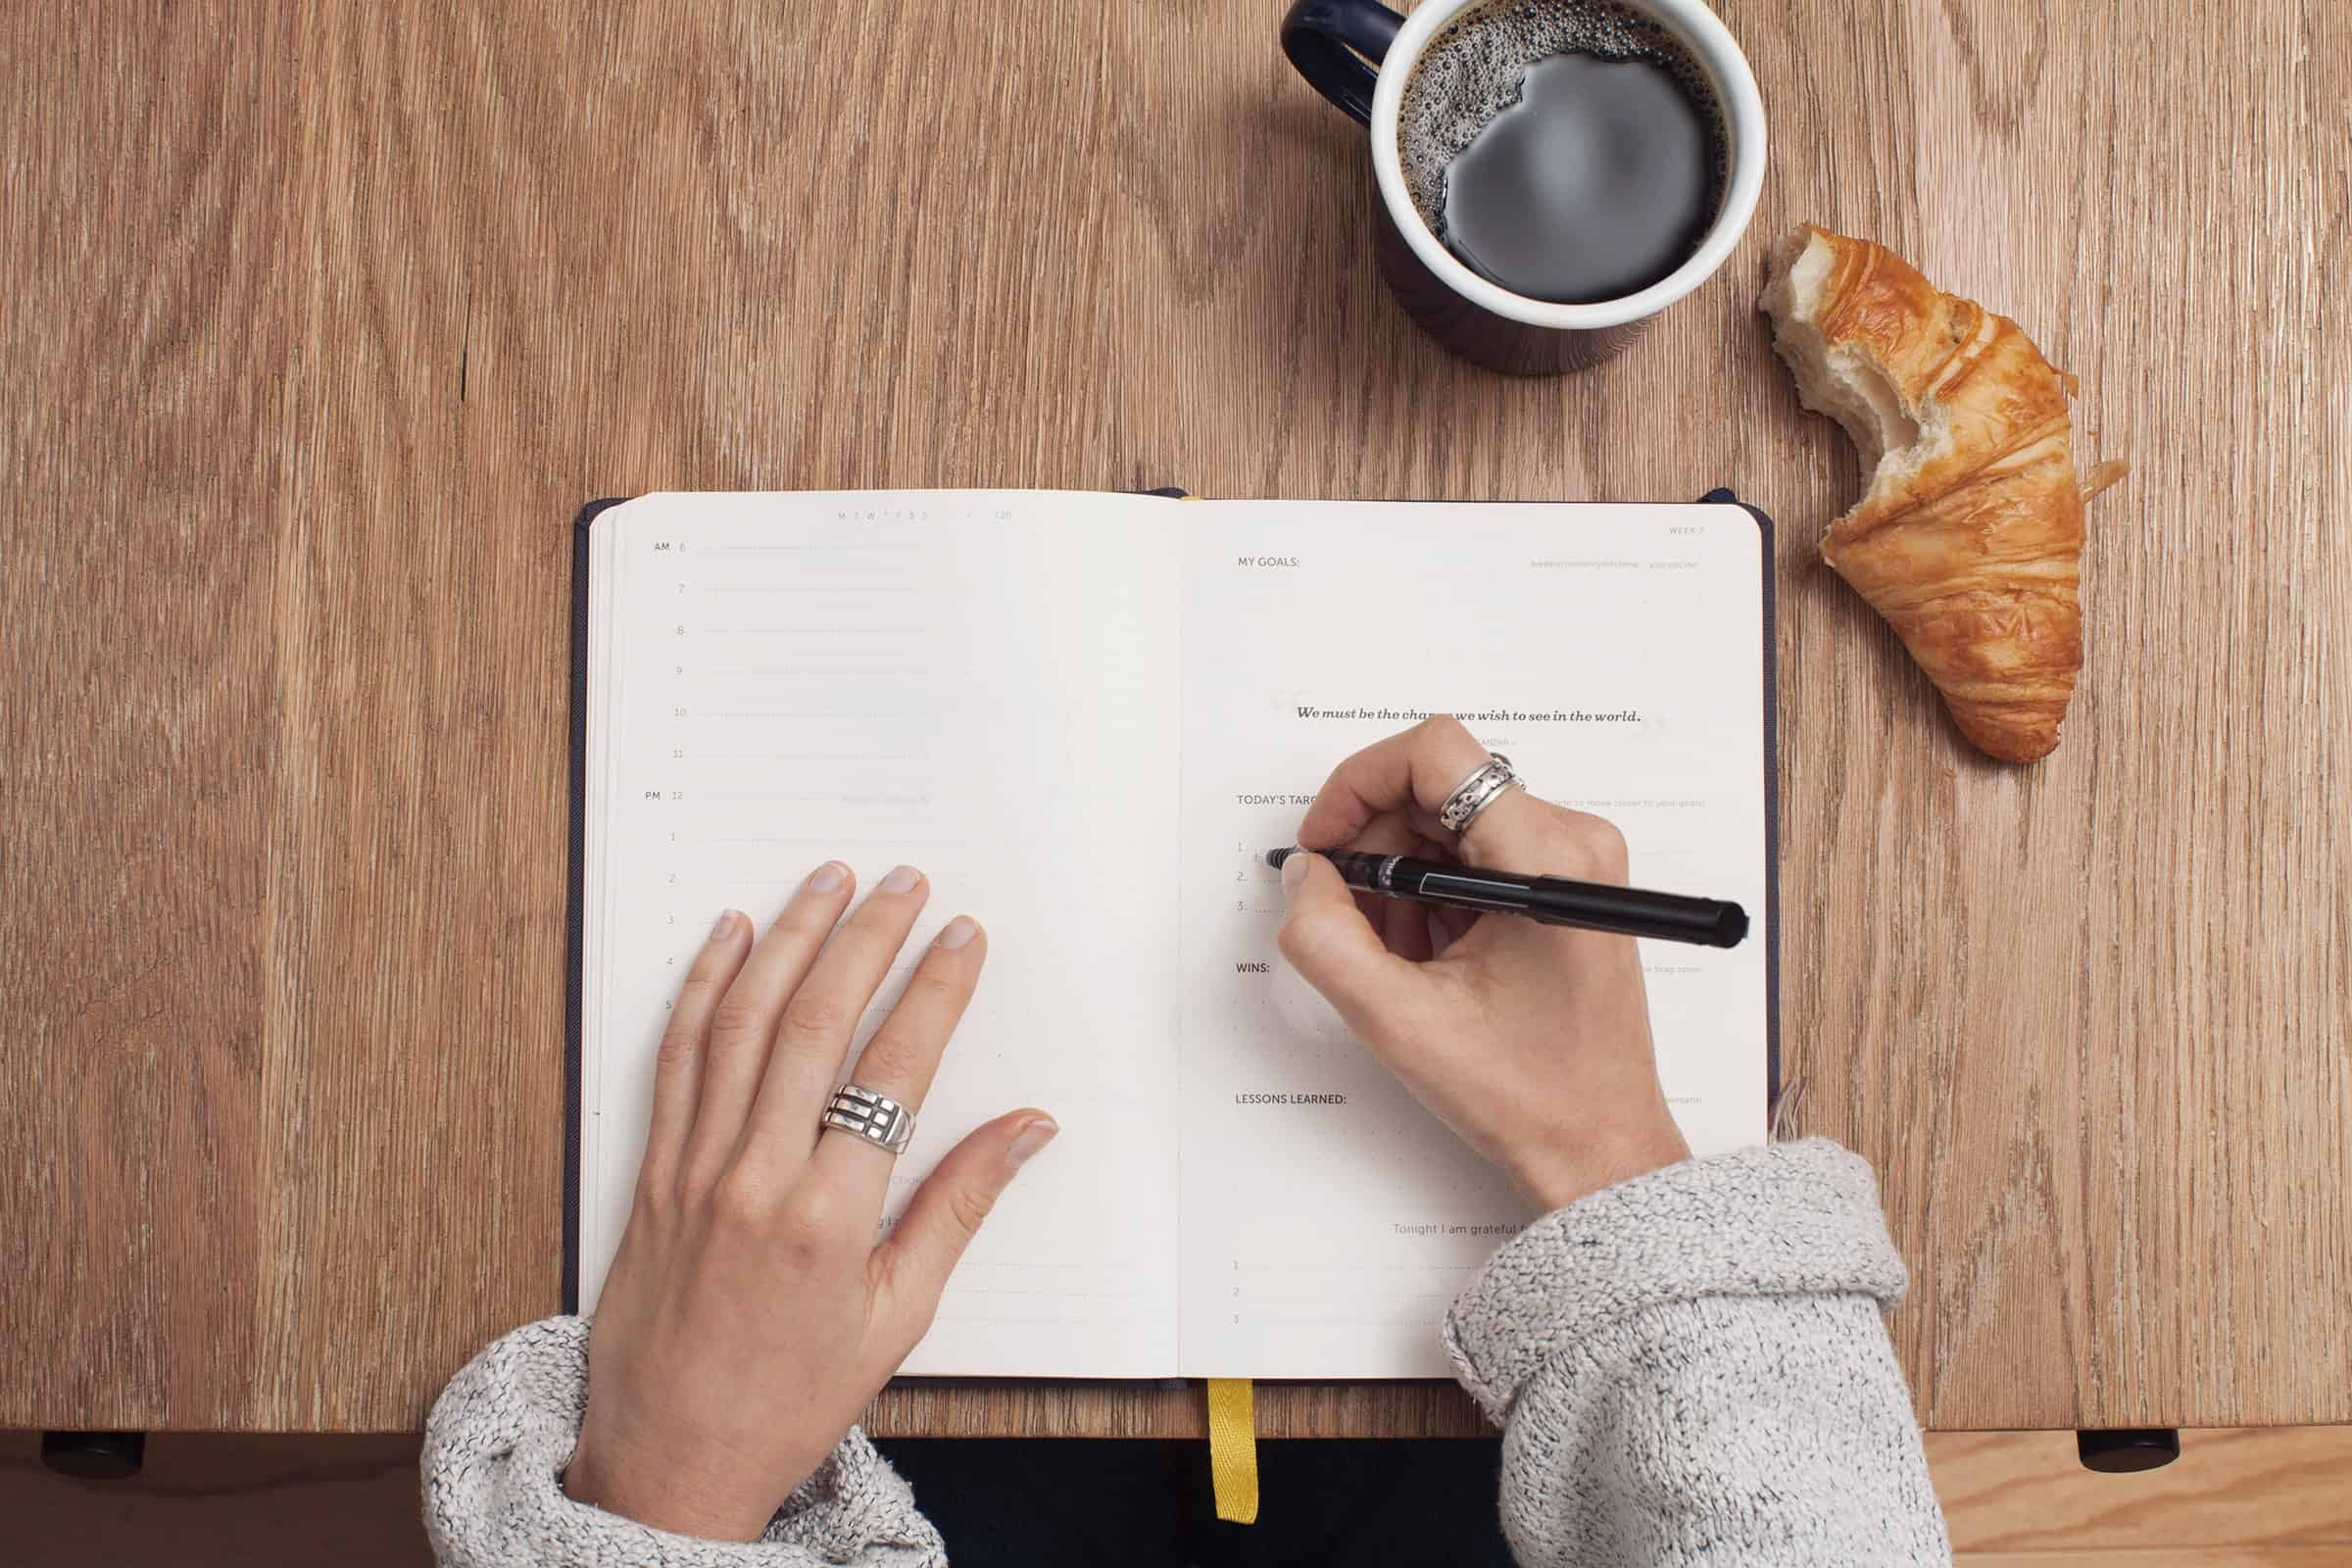 Tips For Finding Inspiration While Working at Your Desk